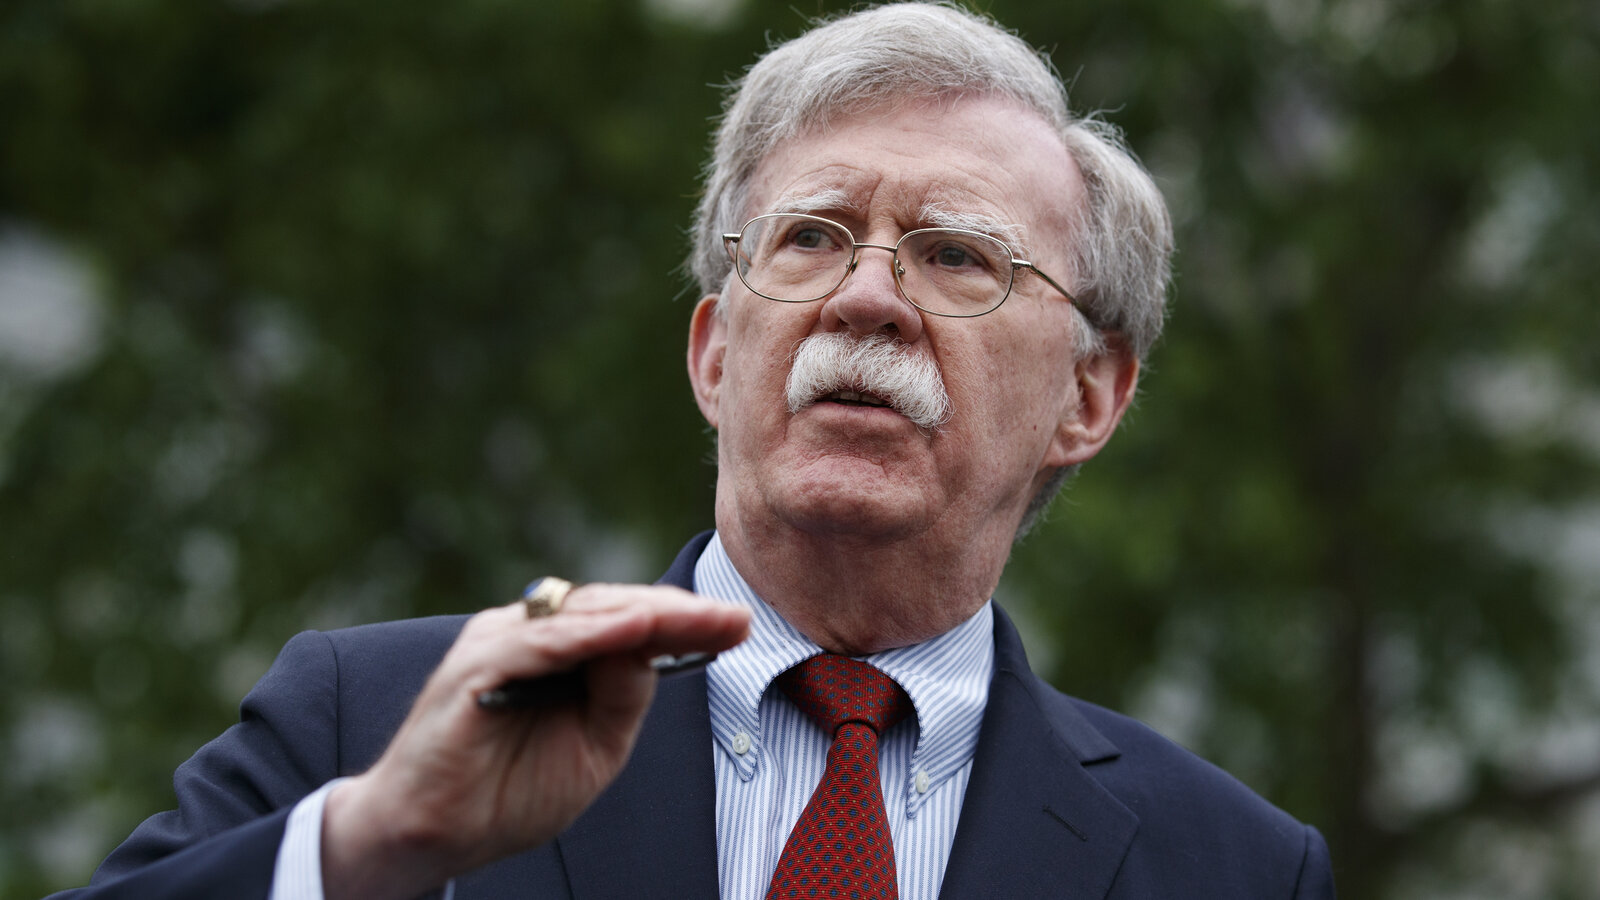 NPR – Trump Fires John Bolton In Final Break After Months Of Internal Policy Division